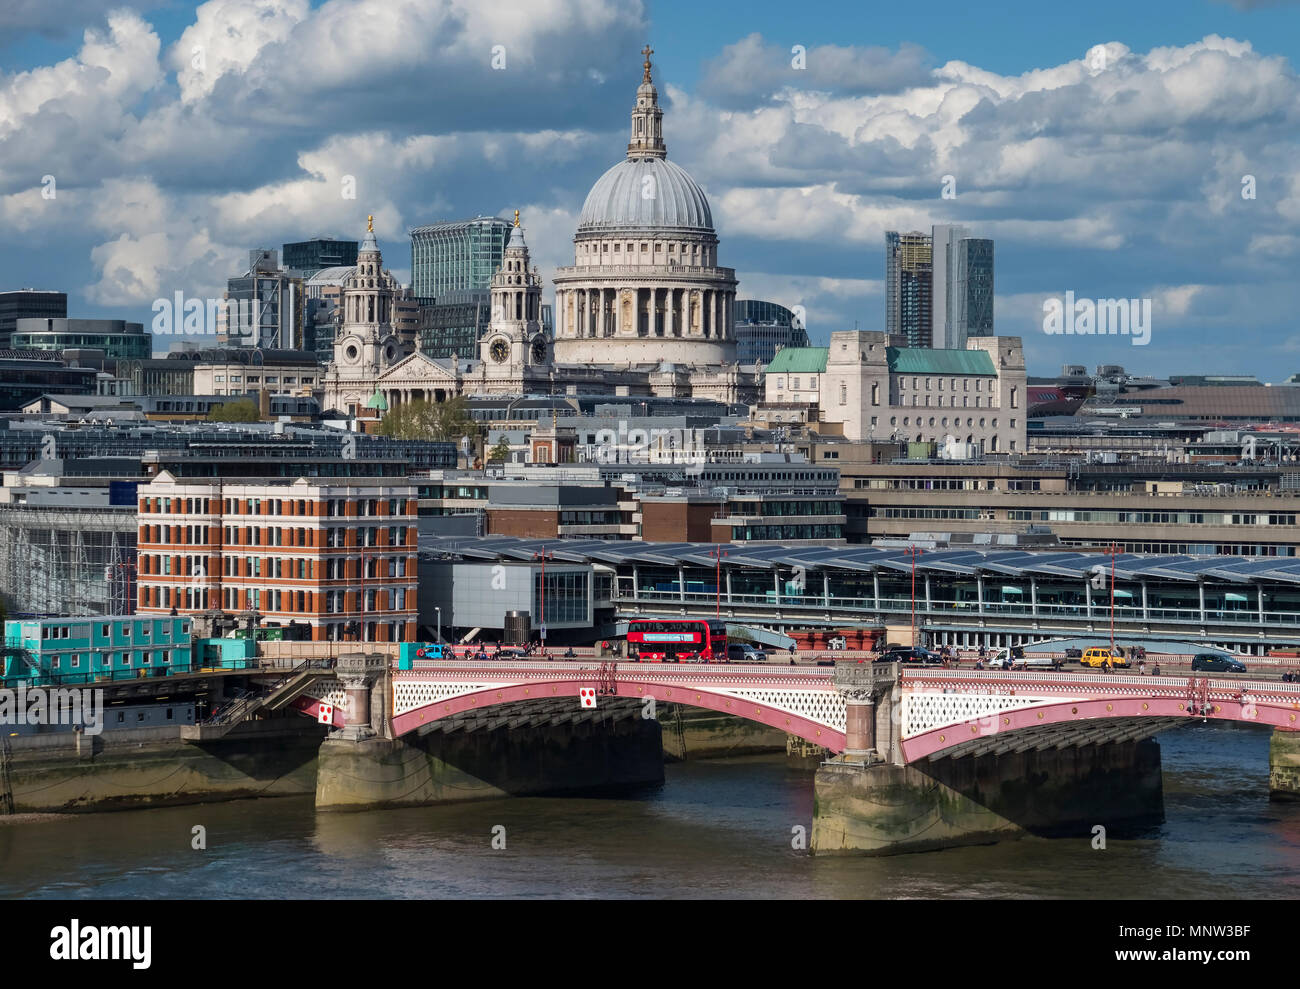 St Paul's Cathedral, Blackfriars Bridge & the River Thames, London, England, UK - Stock Image